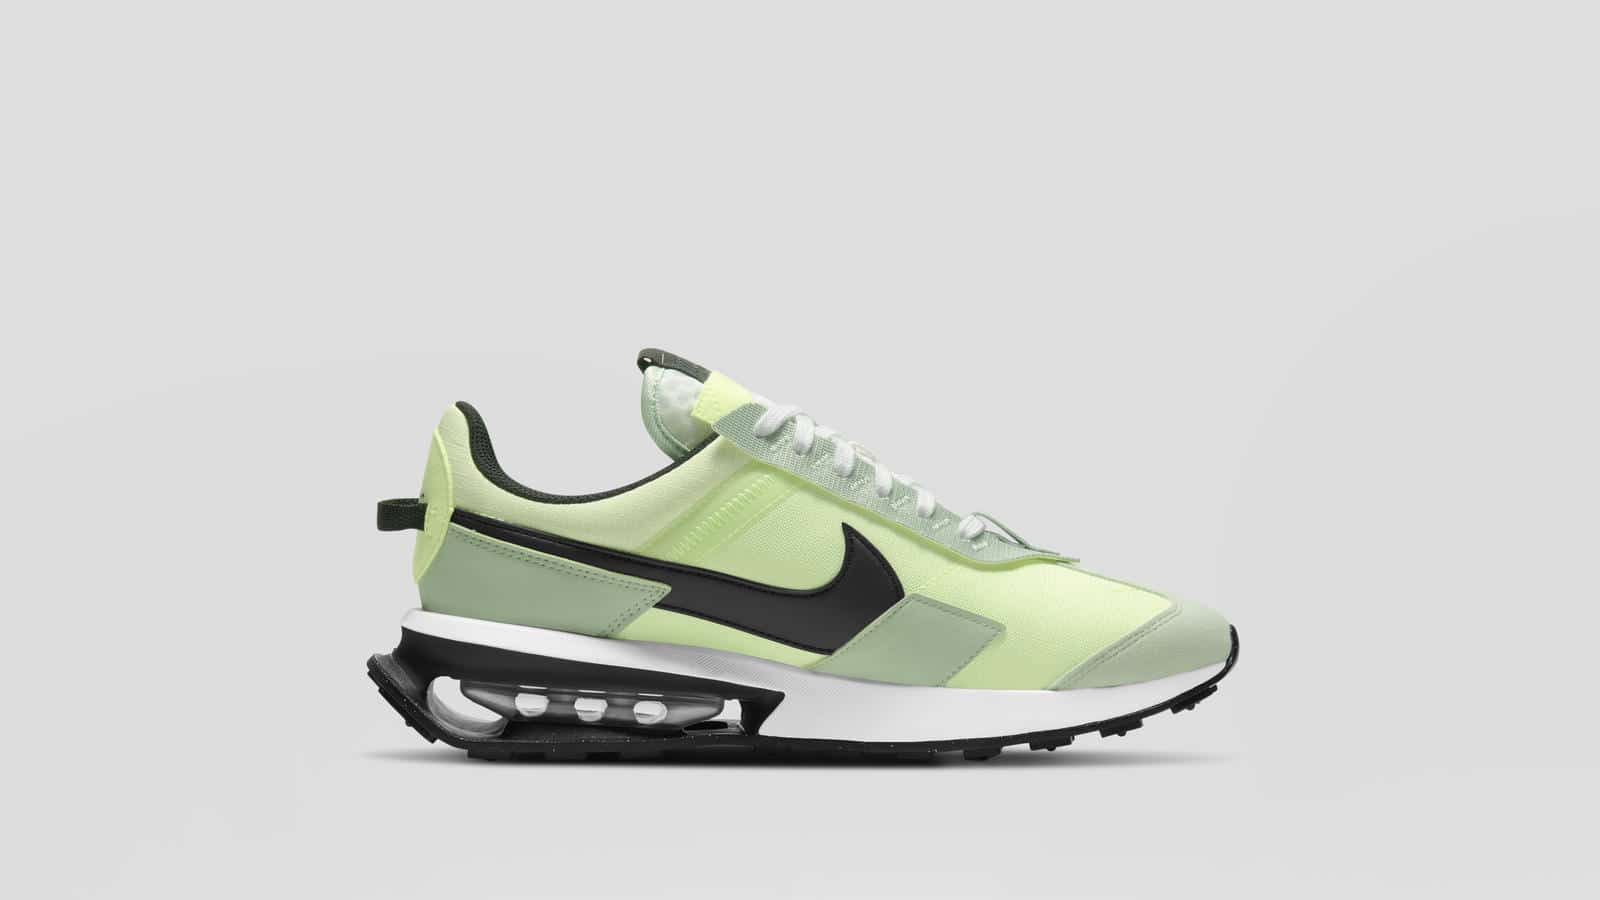 nike air max pre day official images and release date 4 101805